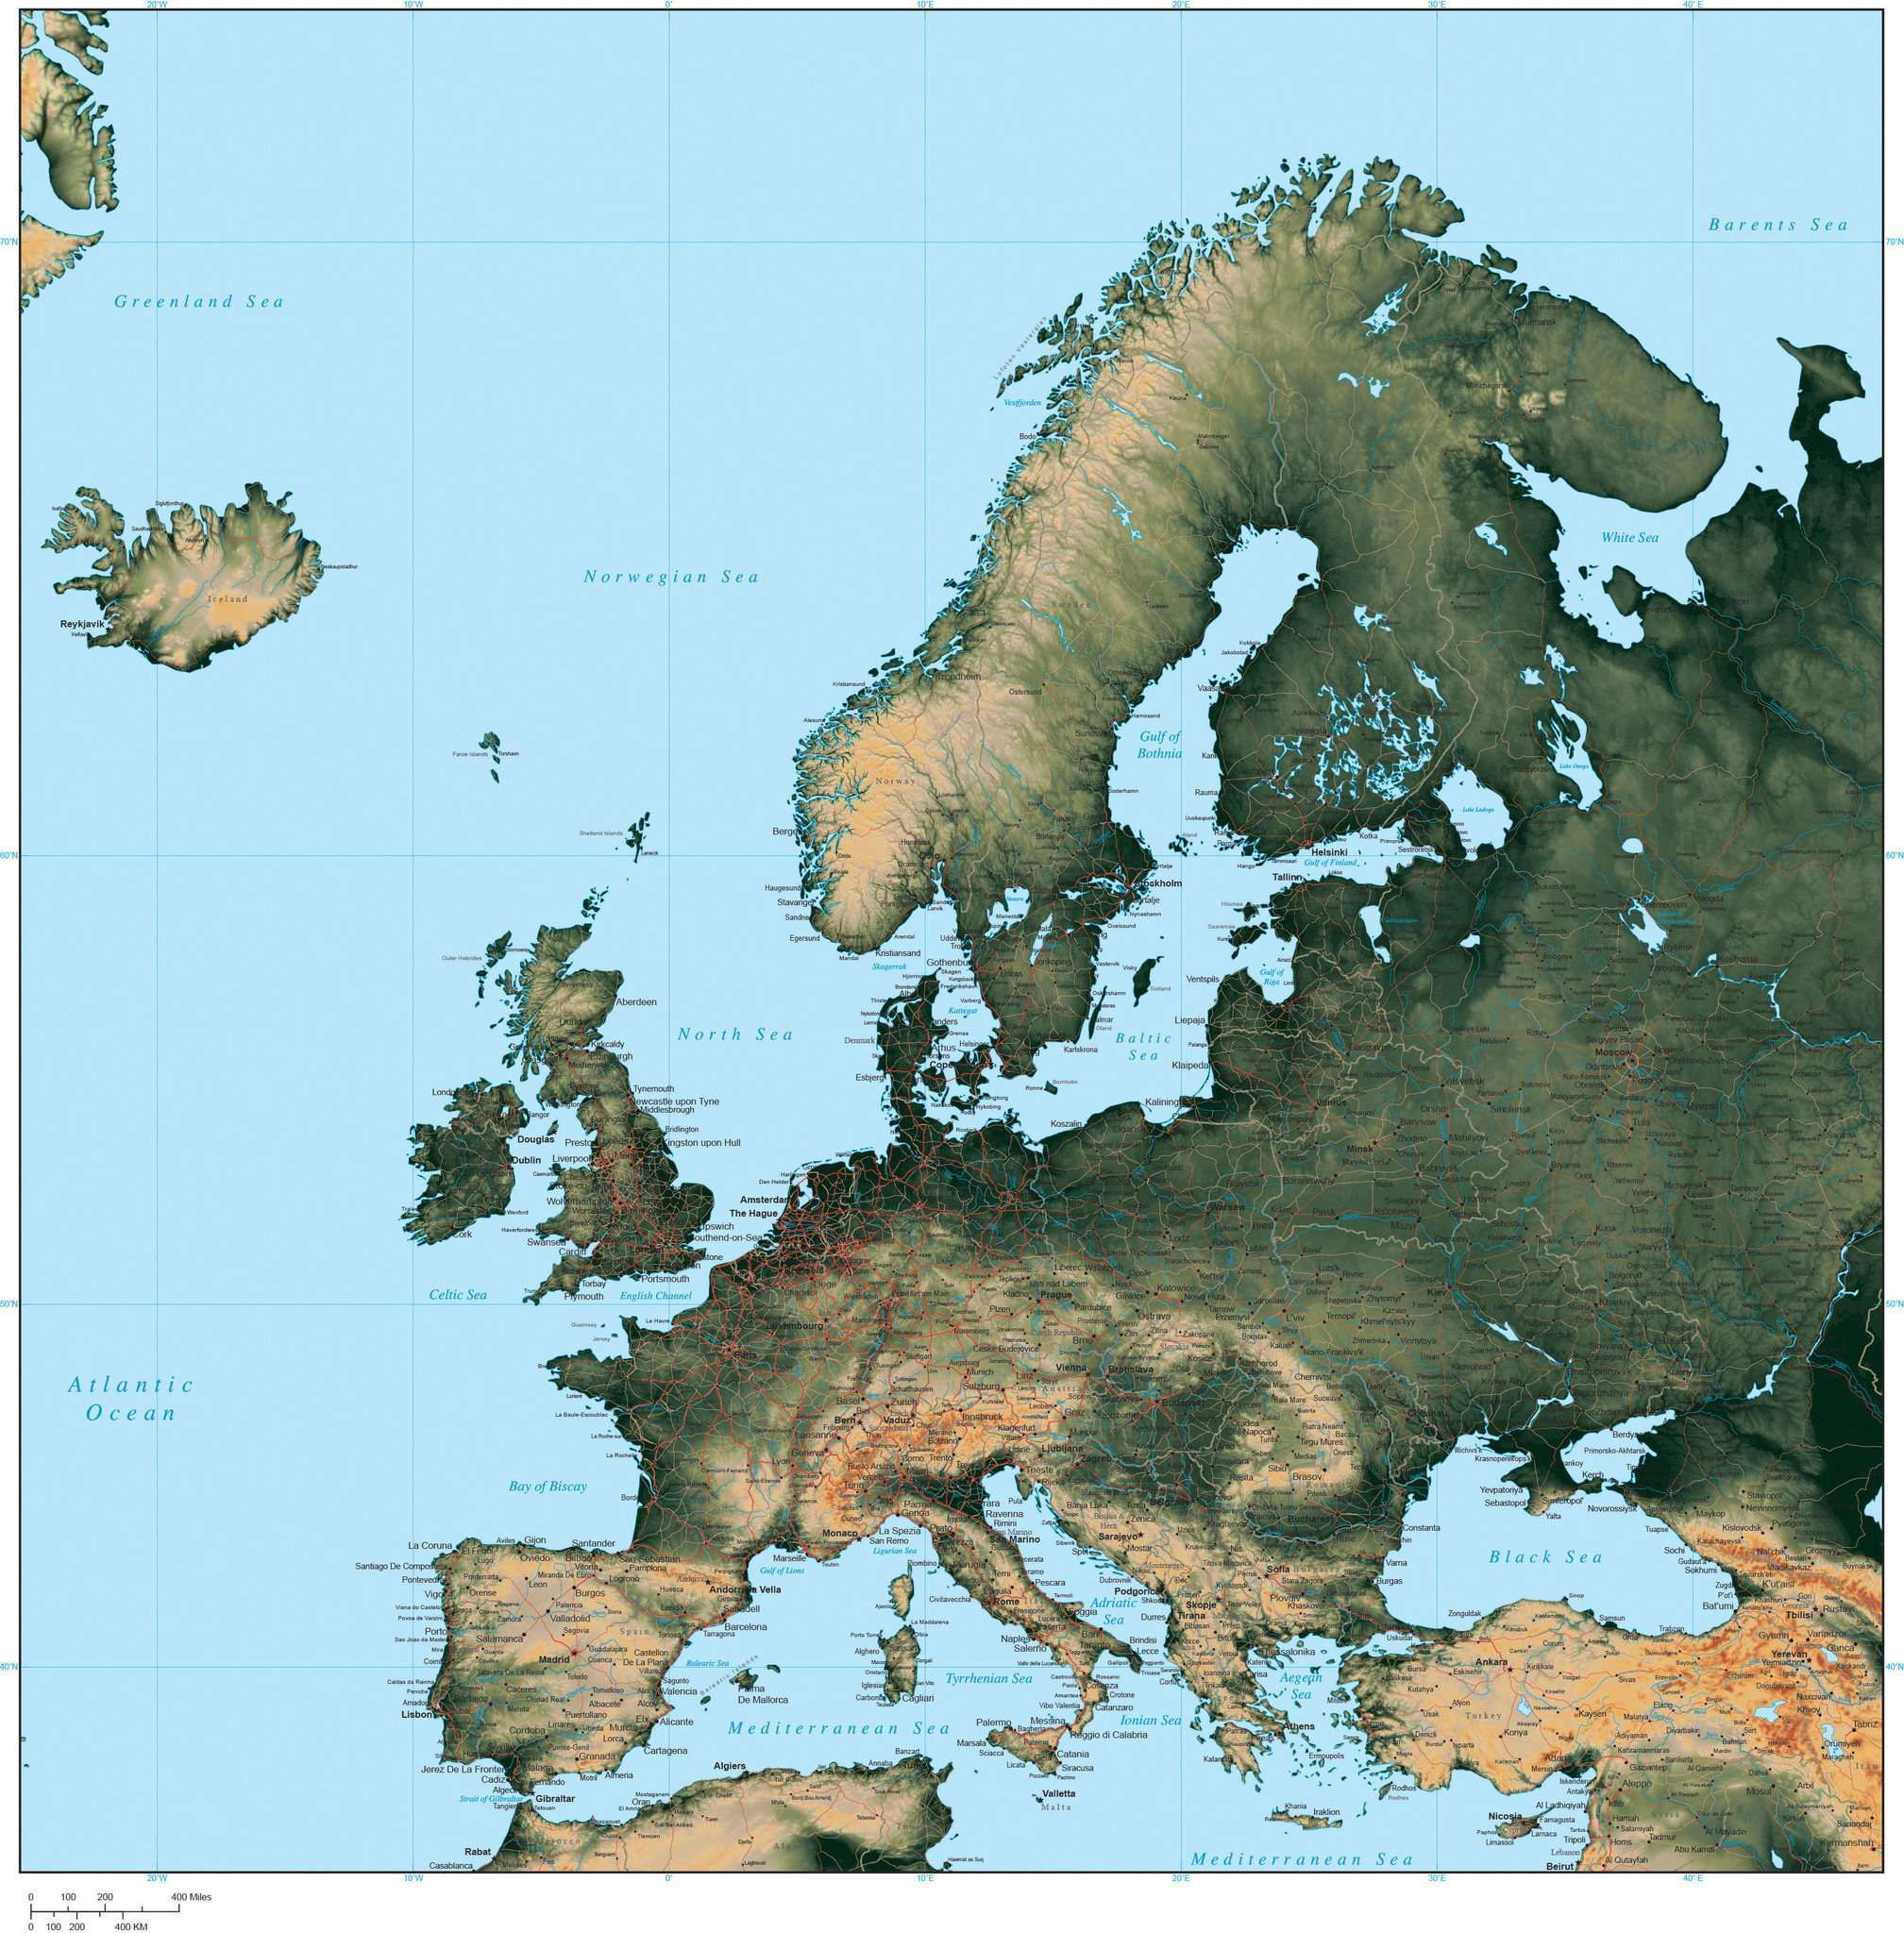 Digital europe terrain map in adobe illustrator vector format europe poster size europe map plus terrain gumiabroncs Choice Image